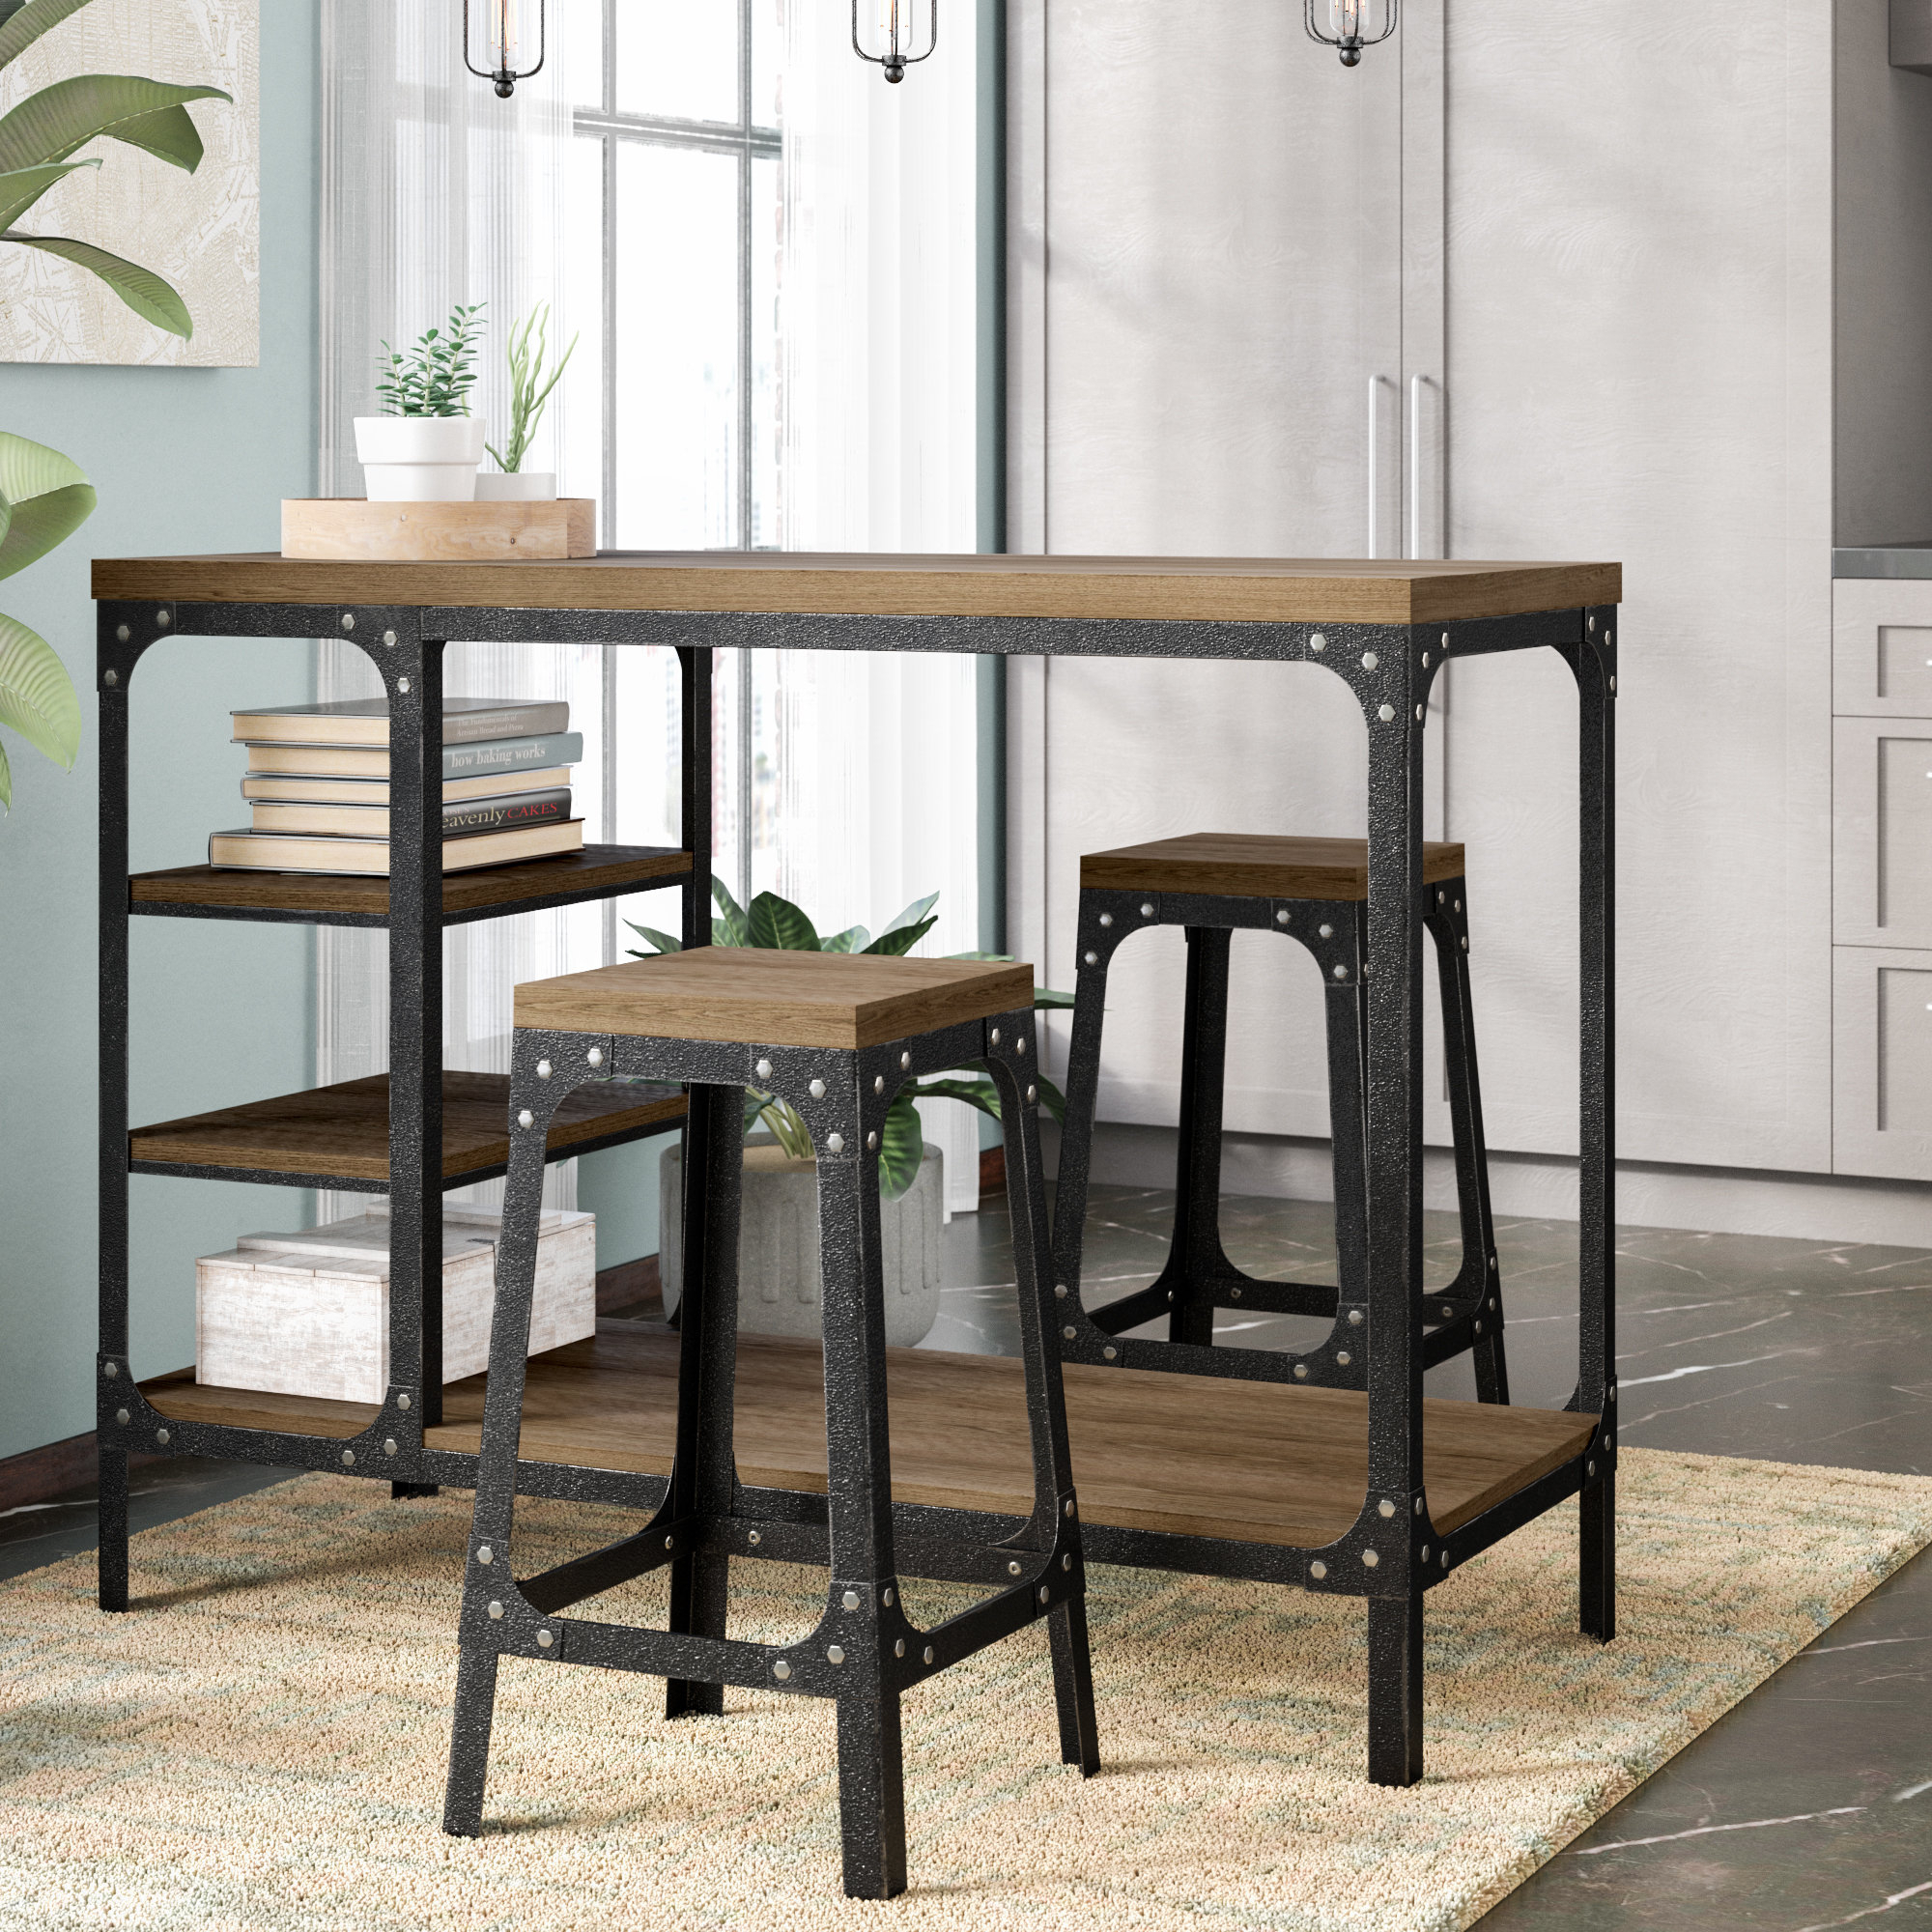 Terence 3 Piece Breakfast Nook Dining Set With Recent 3 Piece Breakfast Dining Sets (View 8 of 20)